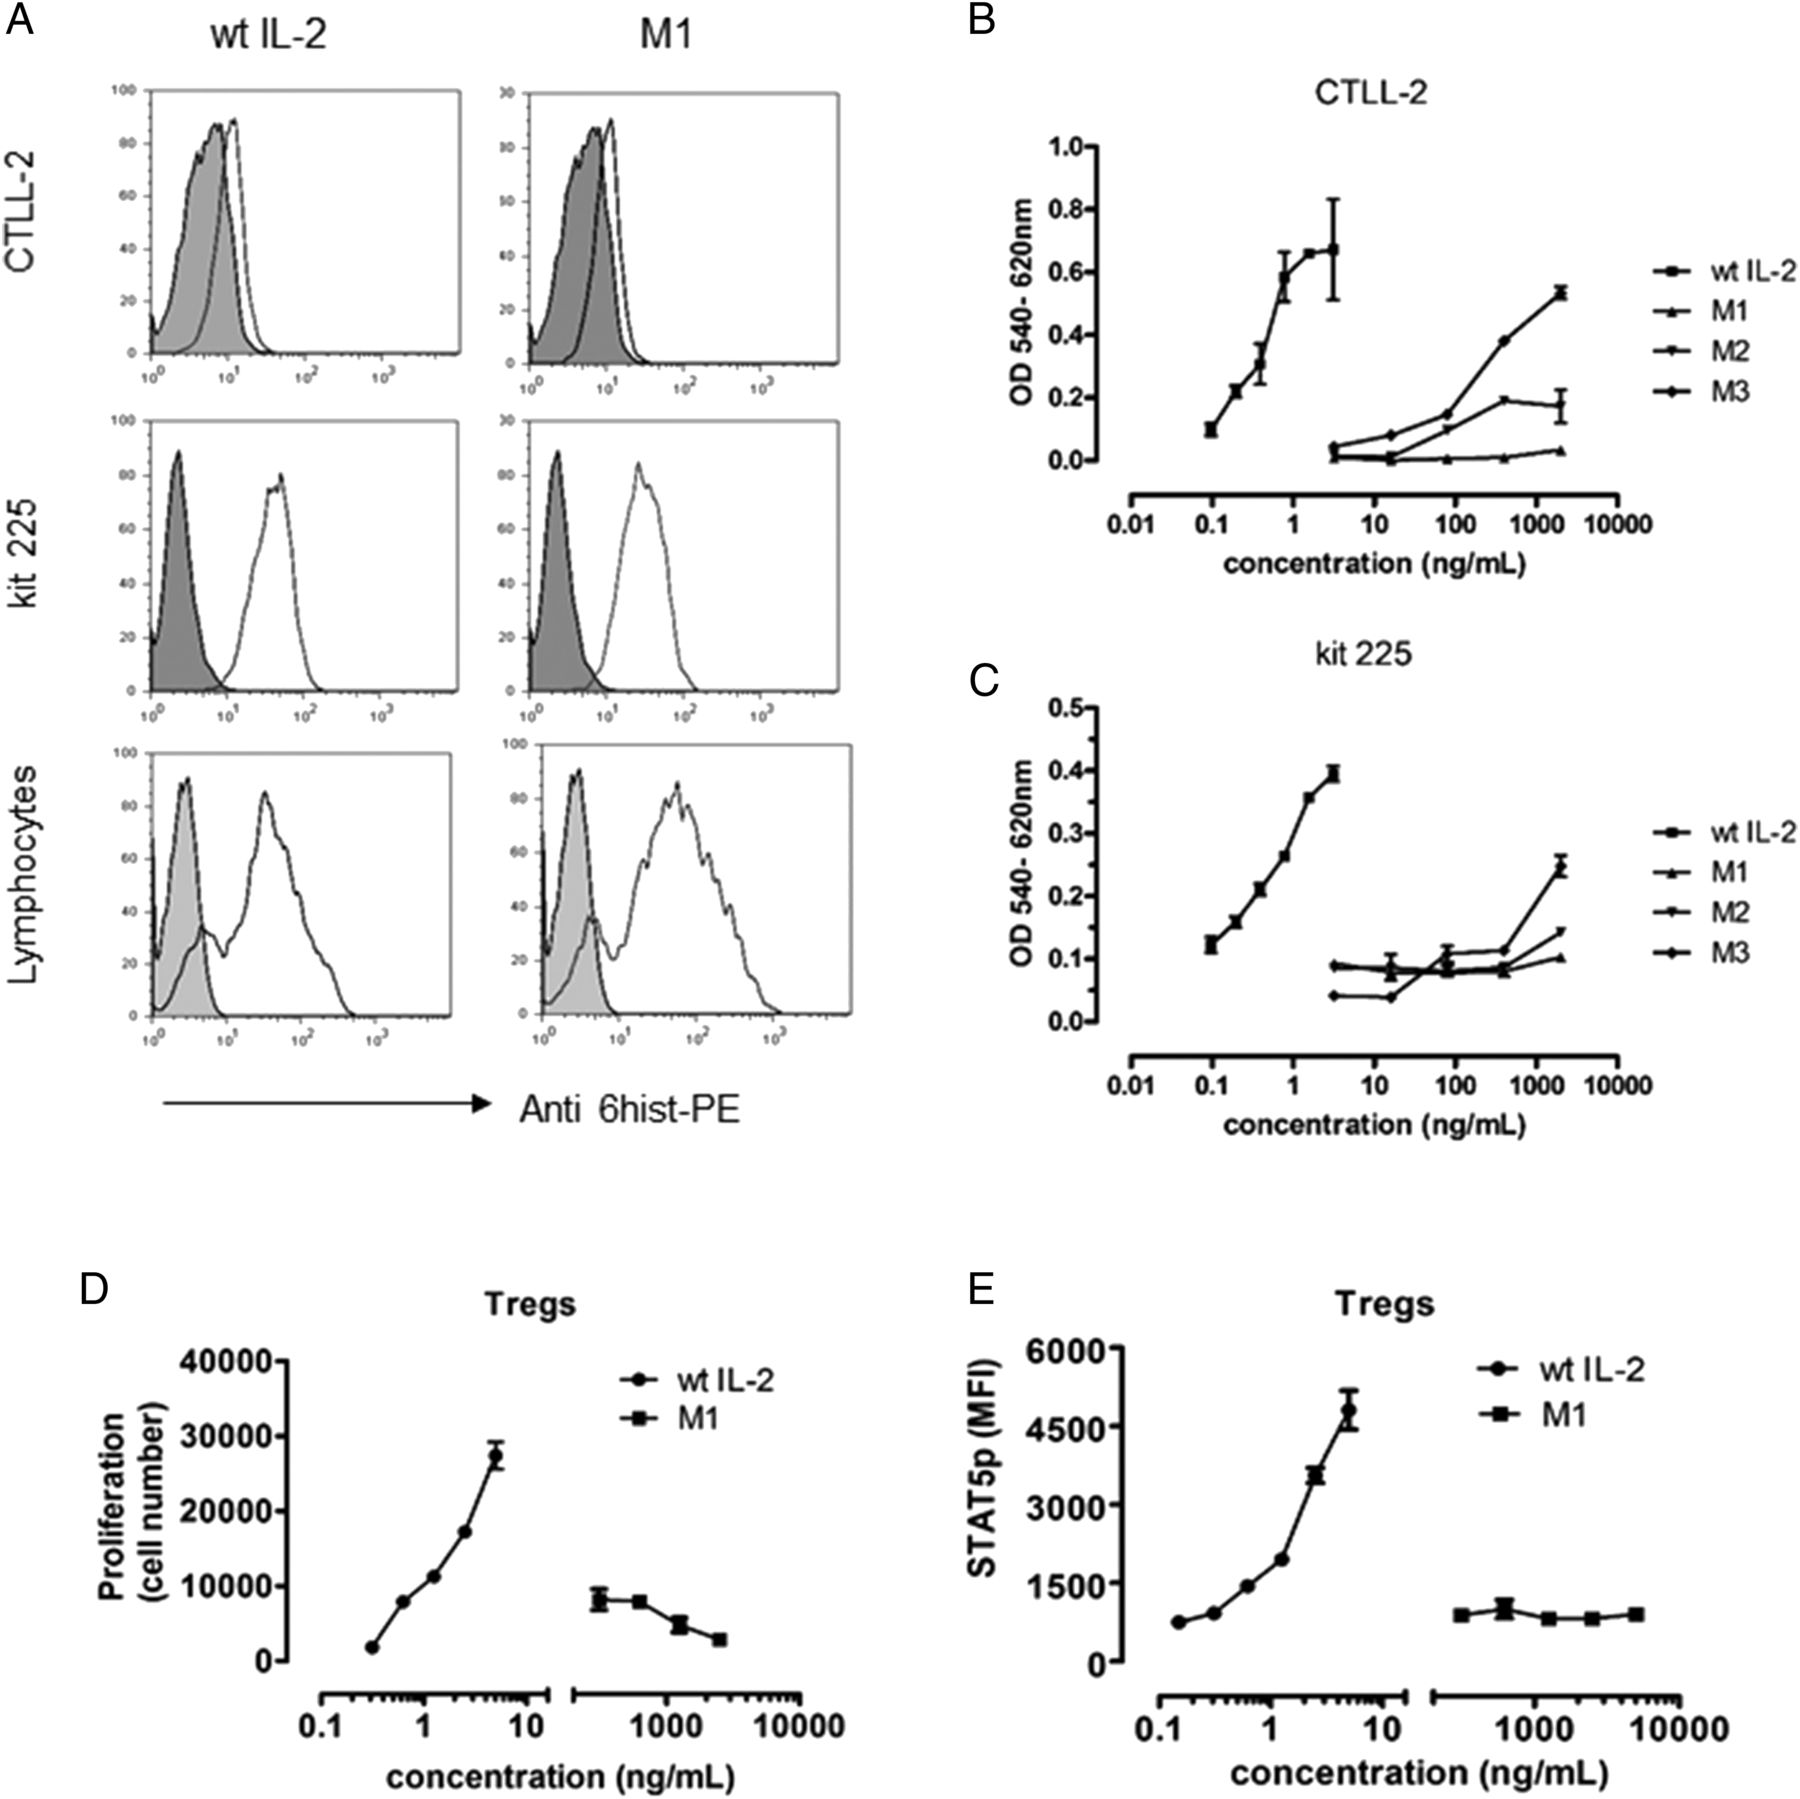 Blocking IL-2 Signal In Vivo with an IL-2 Antagonist Reduces Tumor